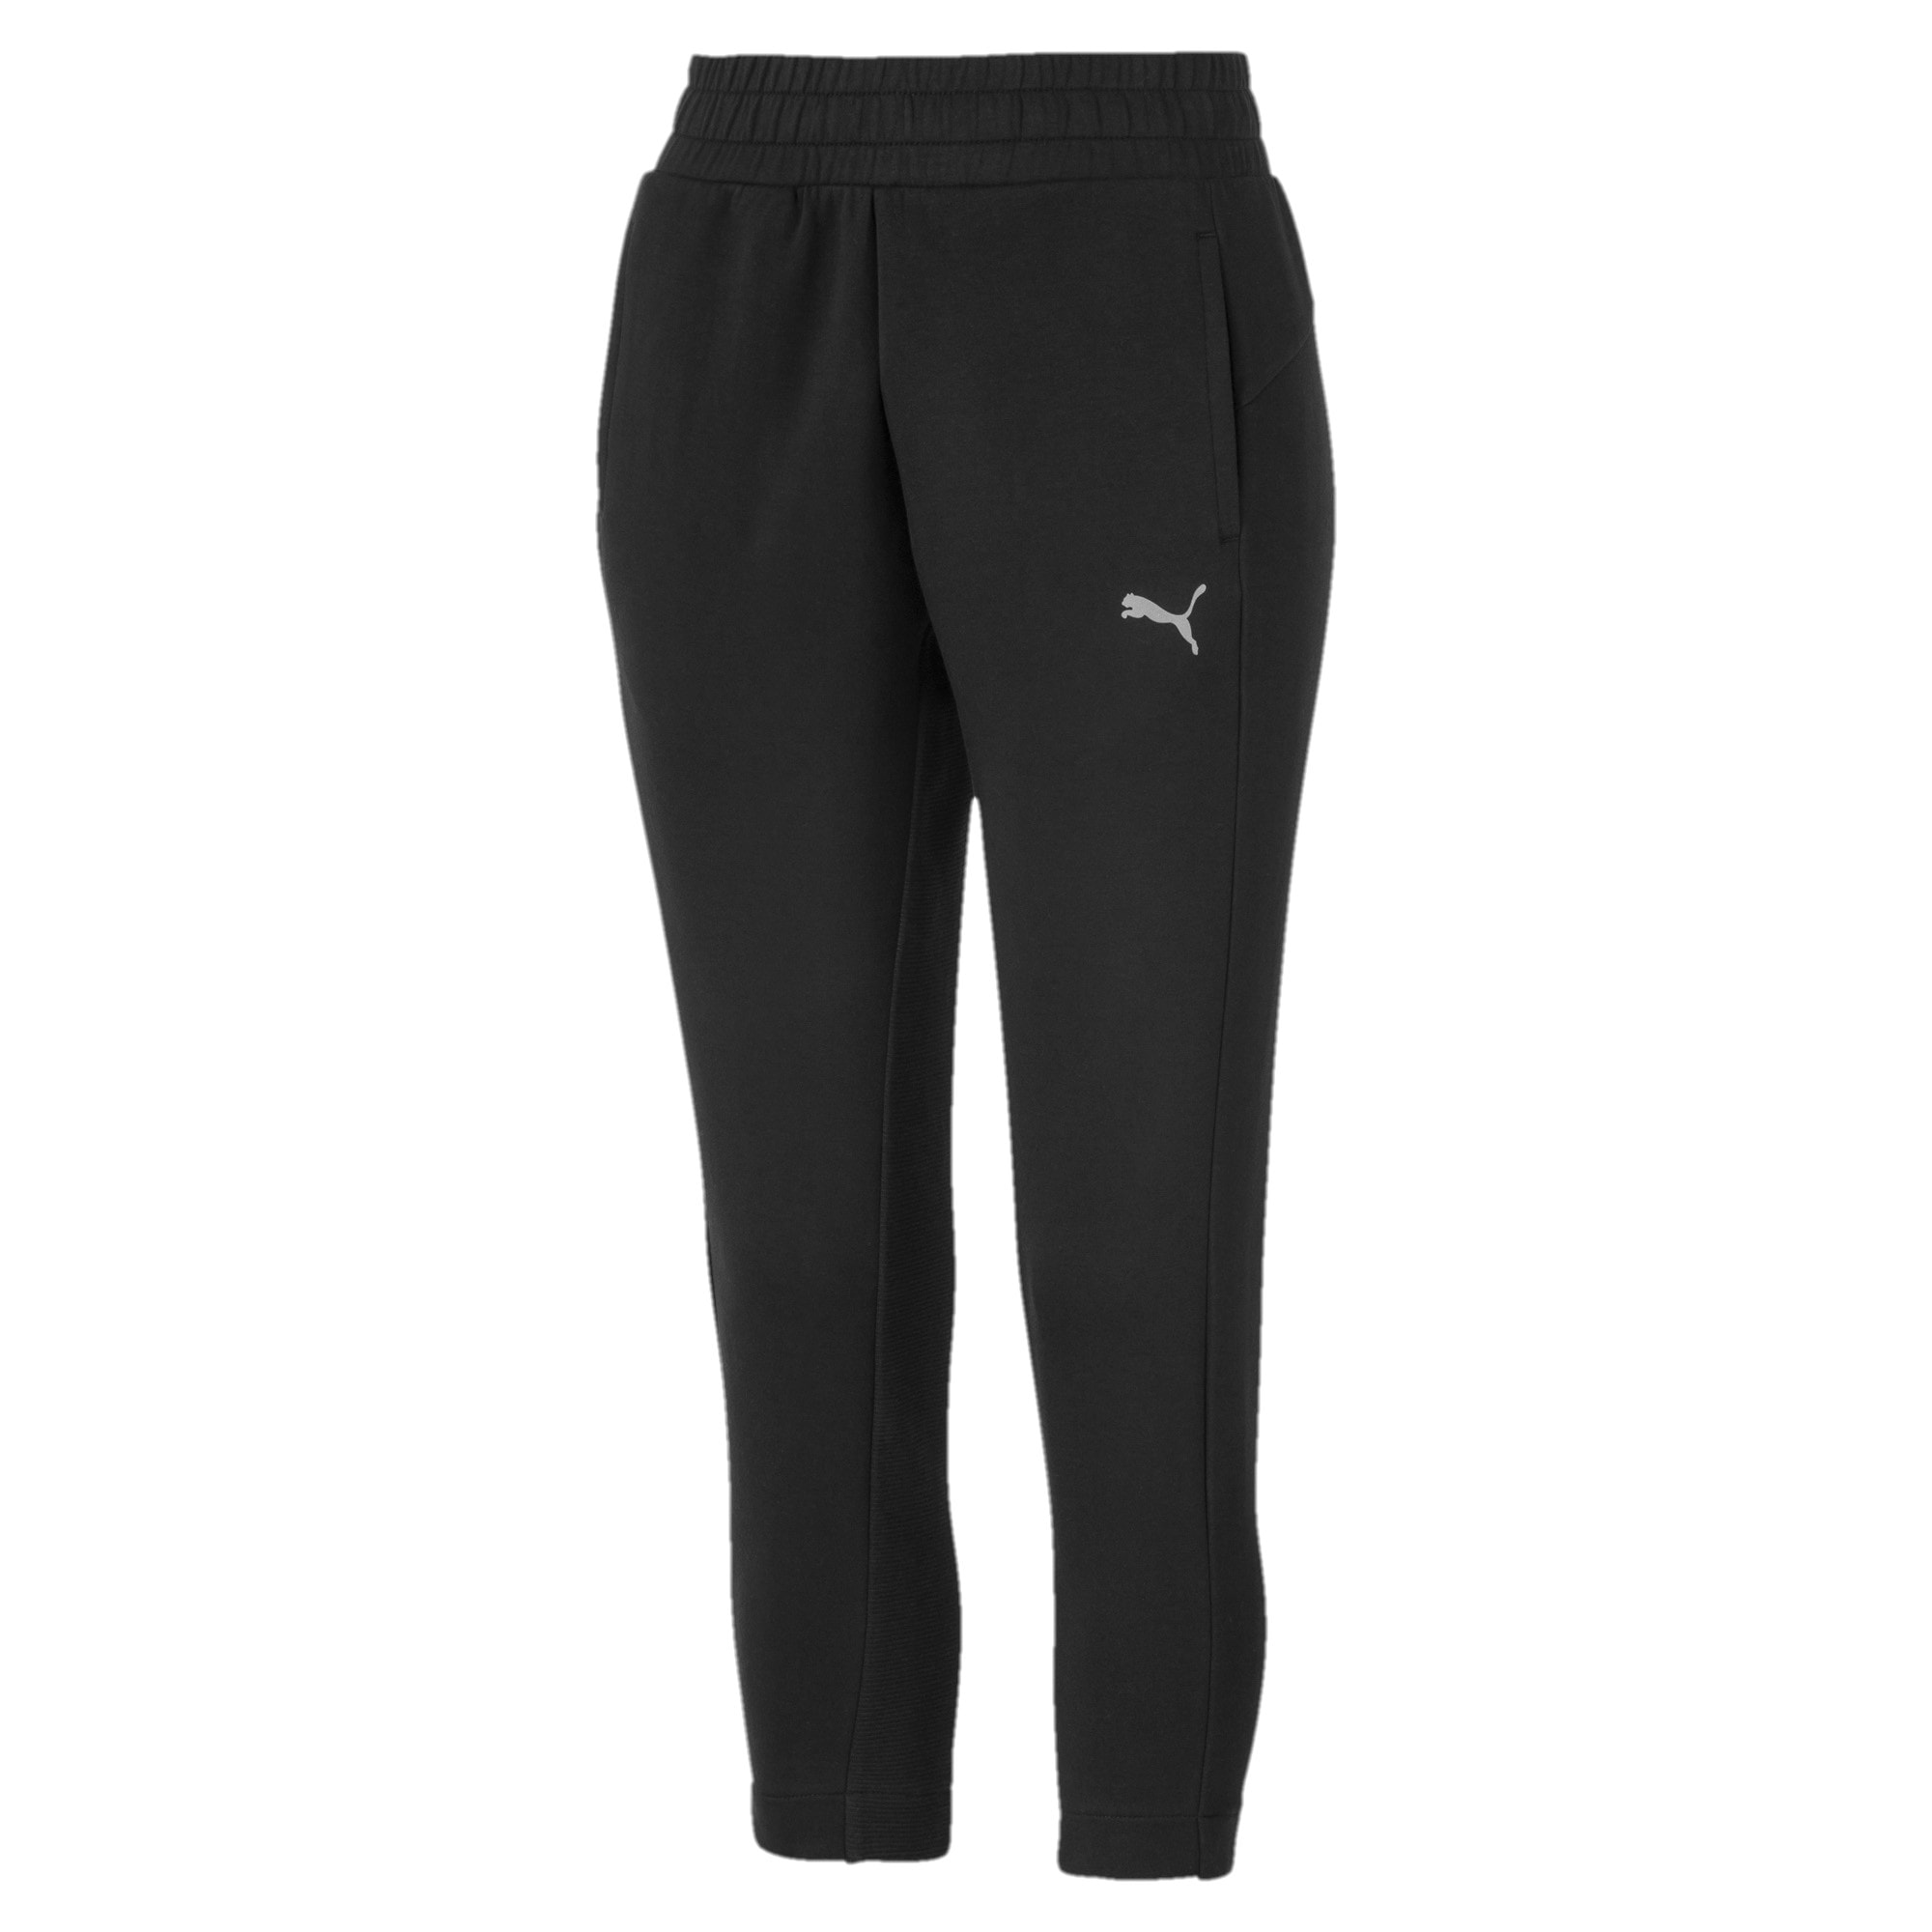 Thumbnail 4 of Evostripe Damen Sweatpants, Puma Black, medium